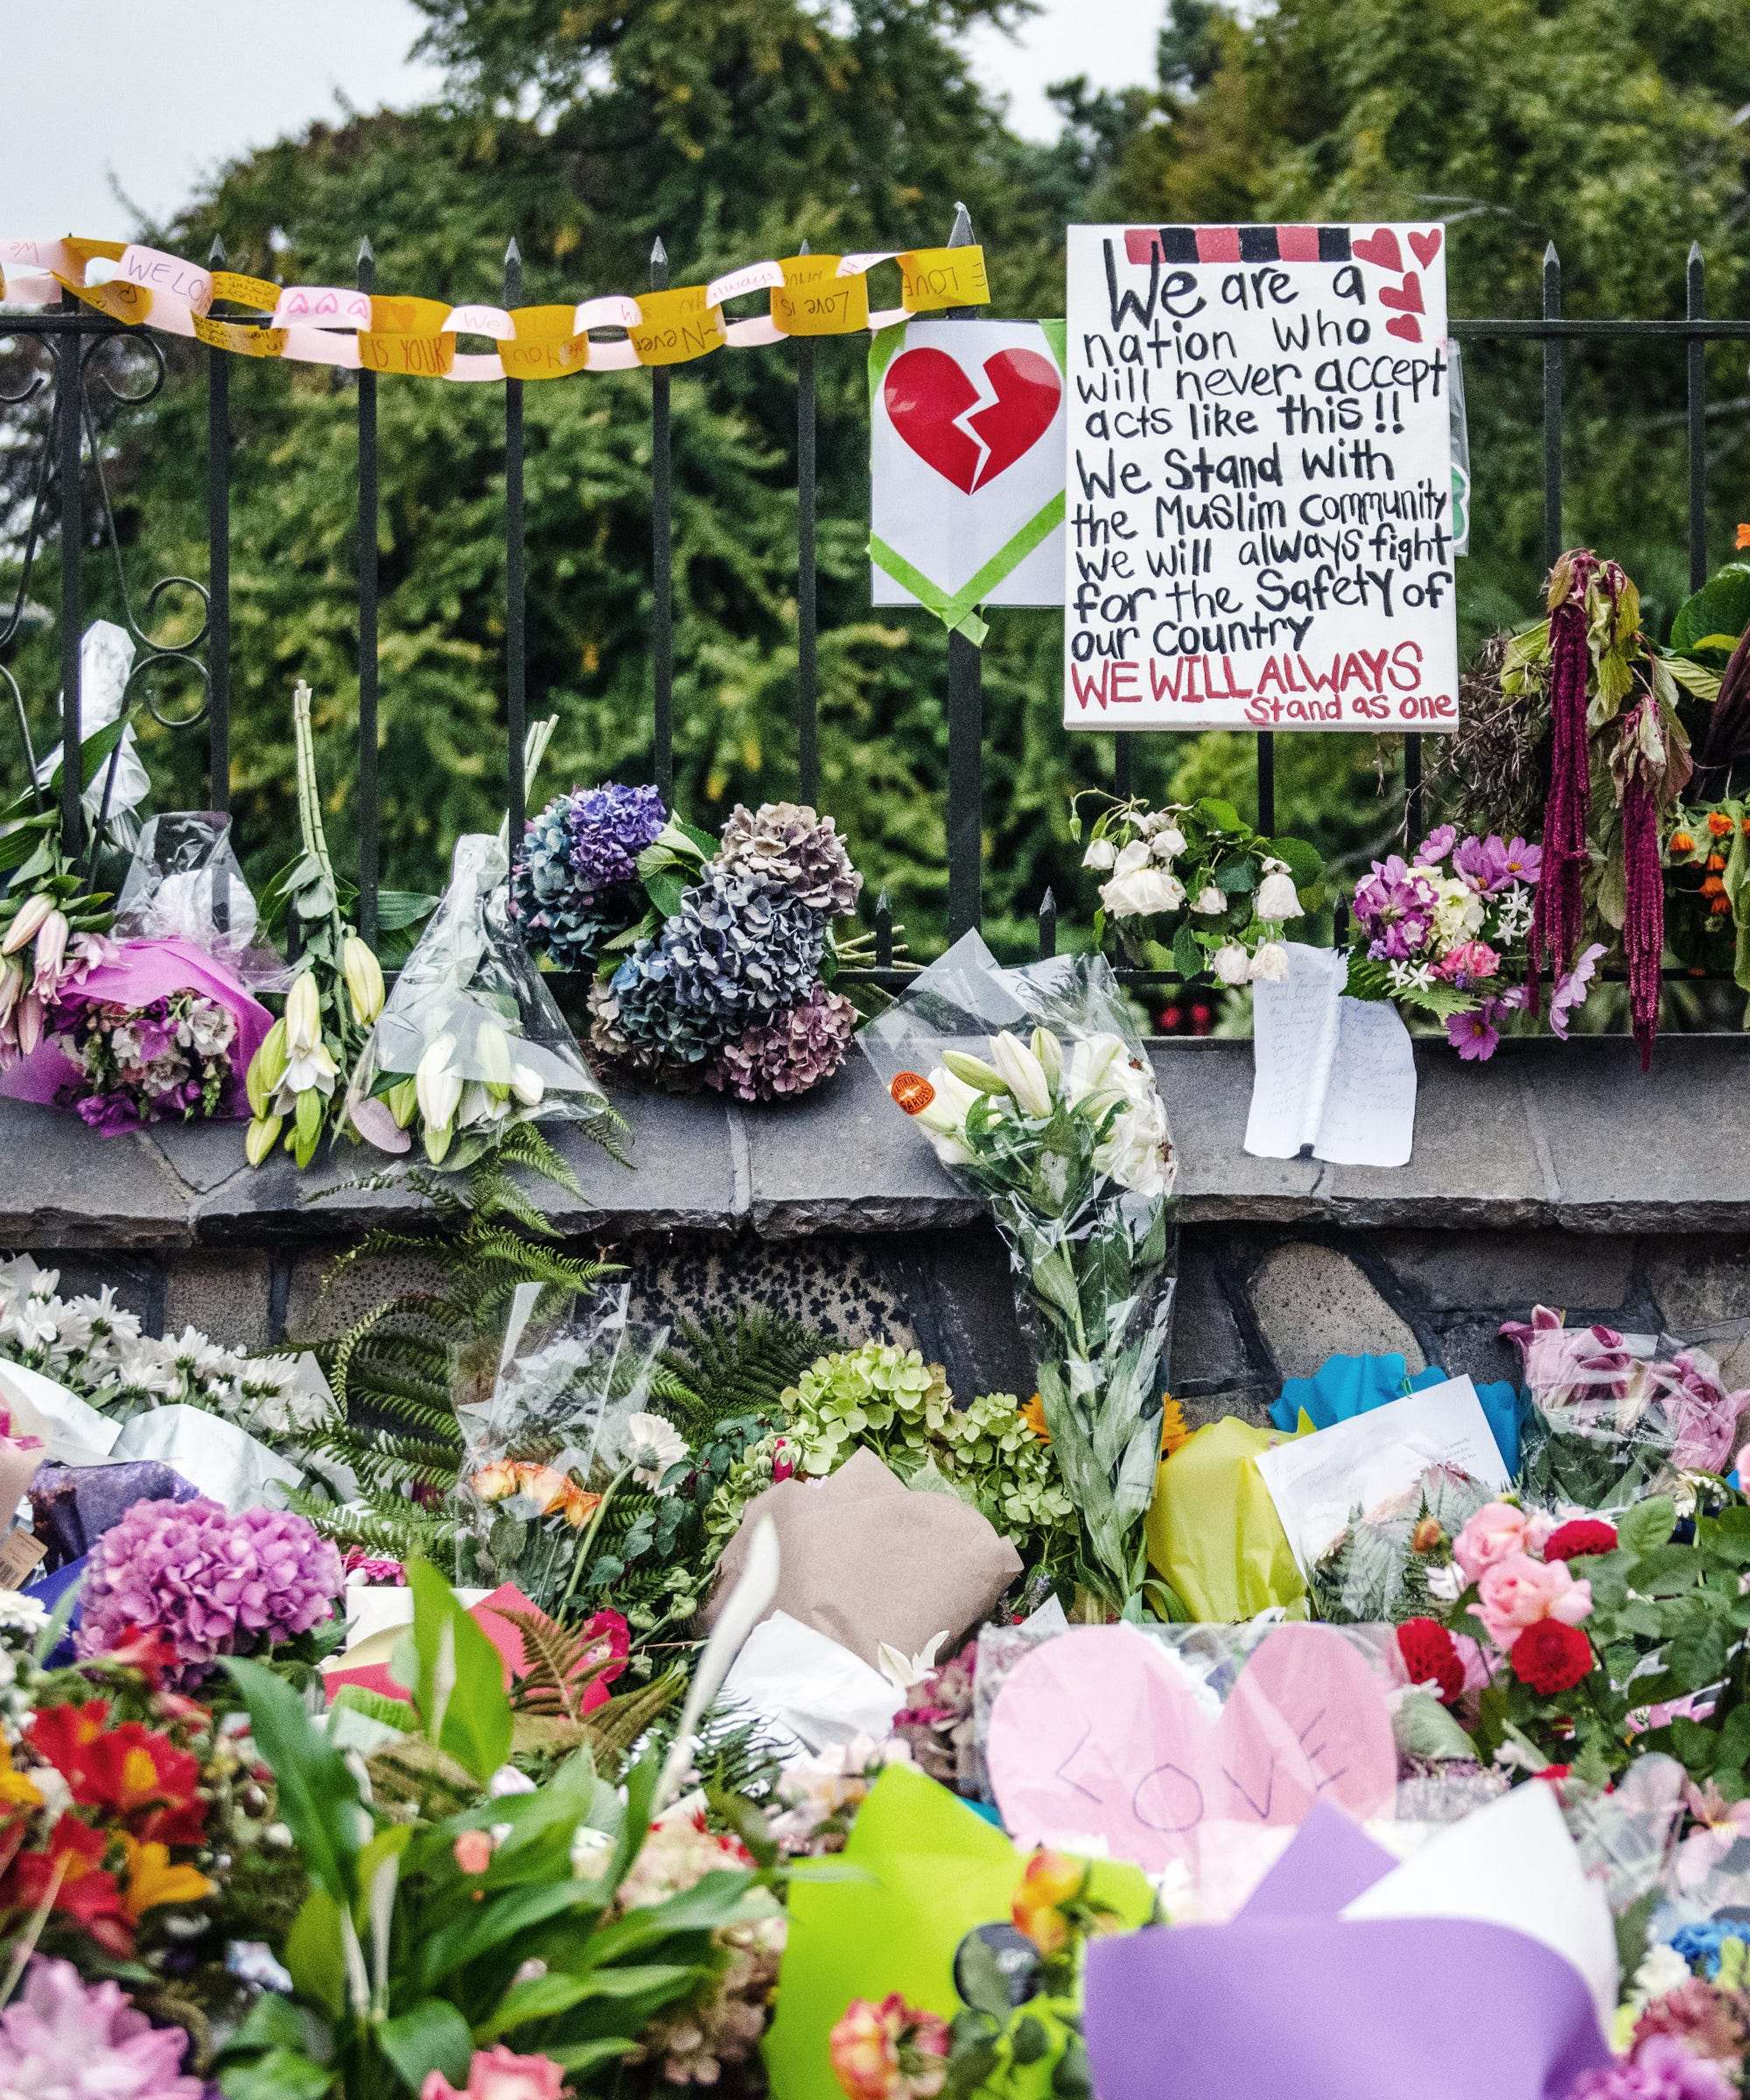 How To Help The Victims Of The Christchurch, New Zealand Shooting